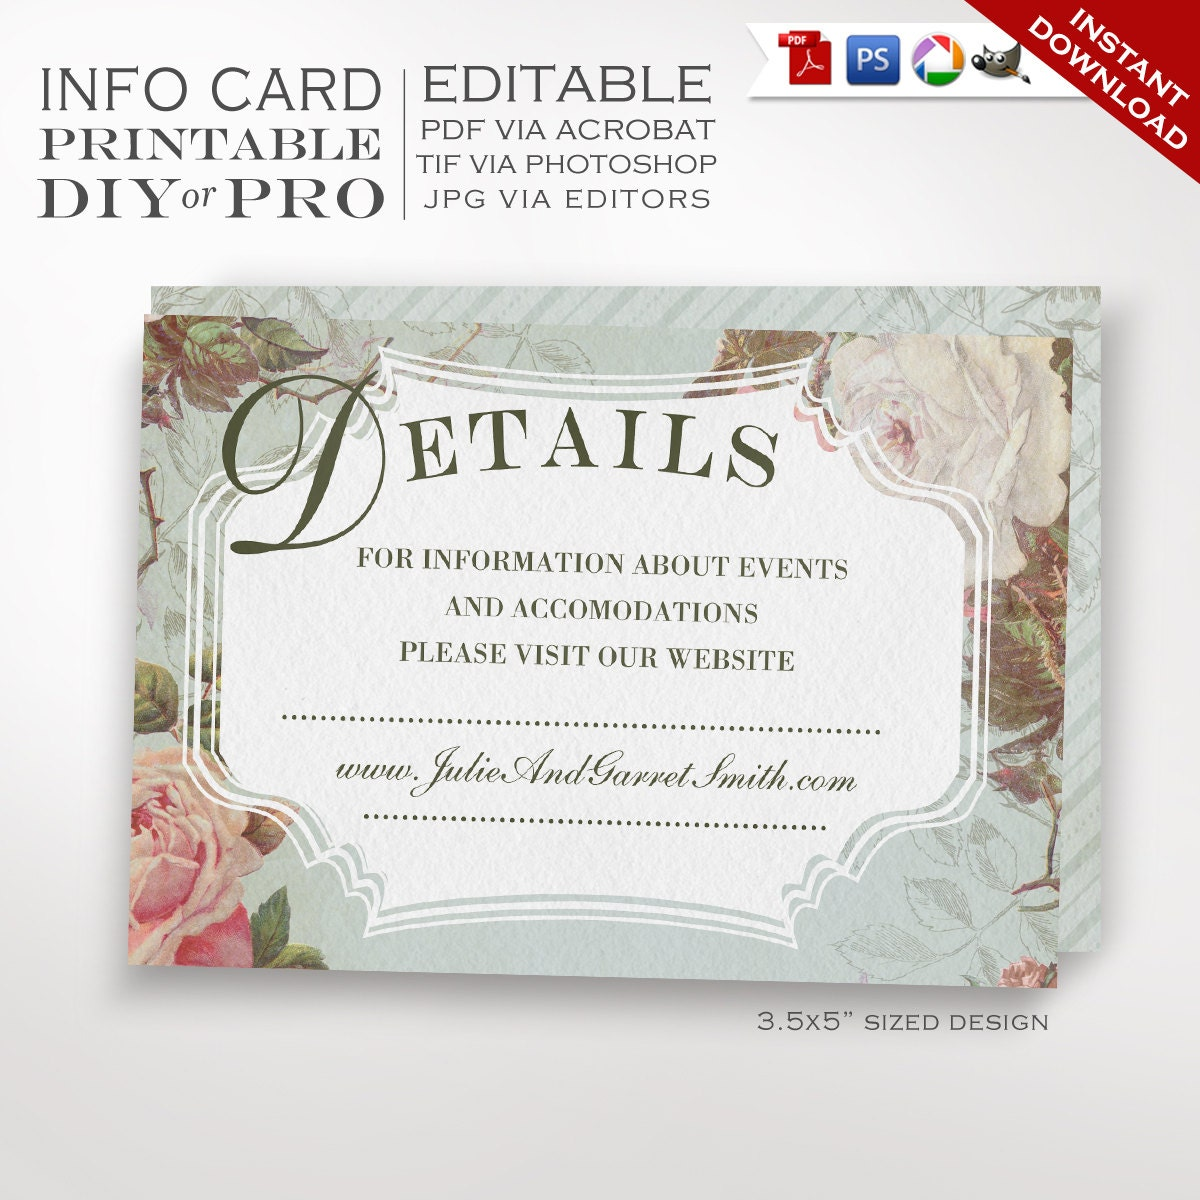 Wedding Website Card Template  Vintage Rose Wedding Information Card  Printable DIY French Country Wedding Editable Custom Additional Info